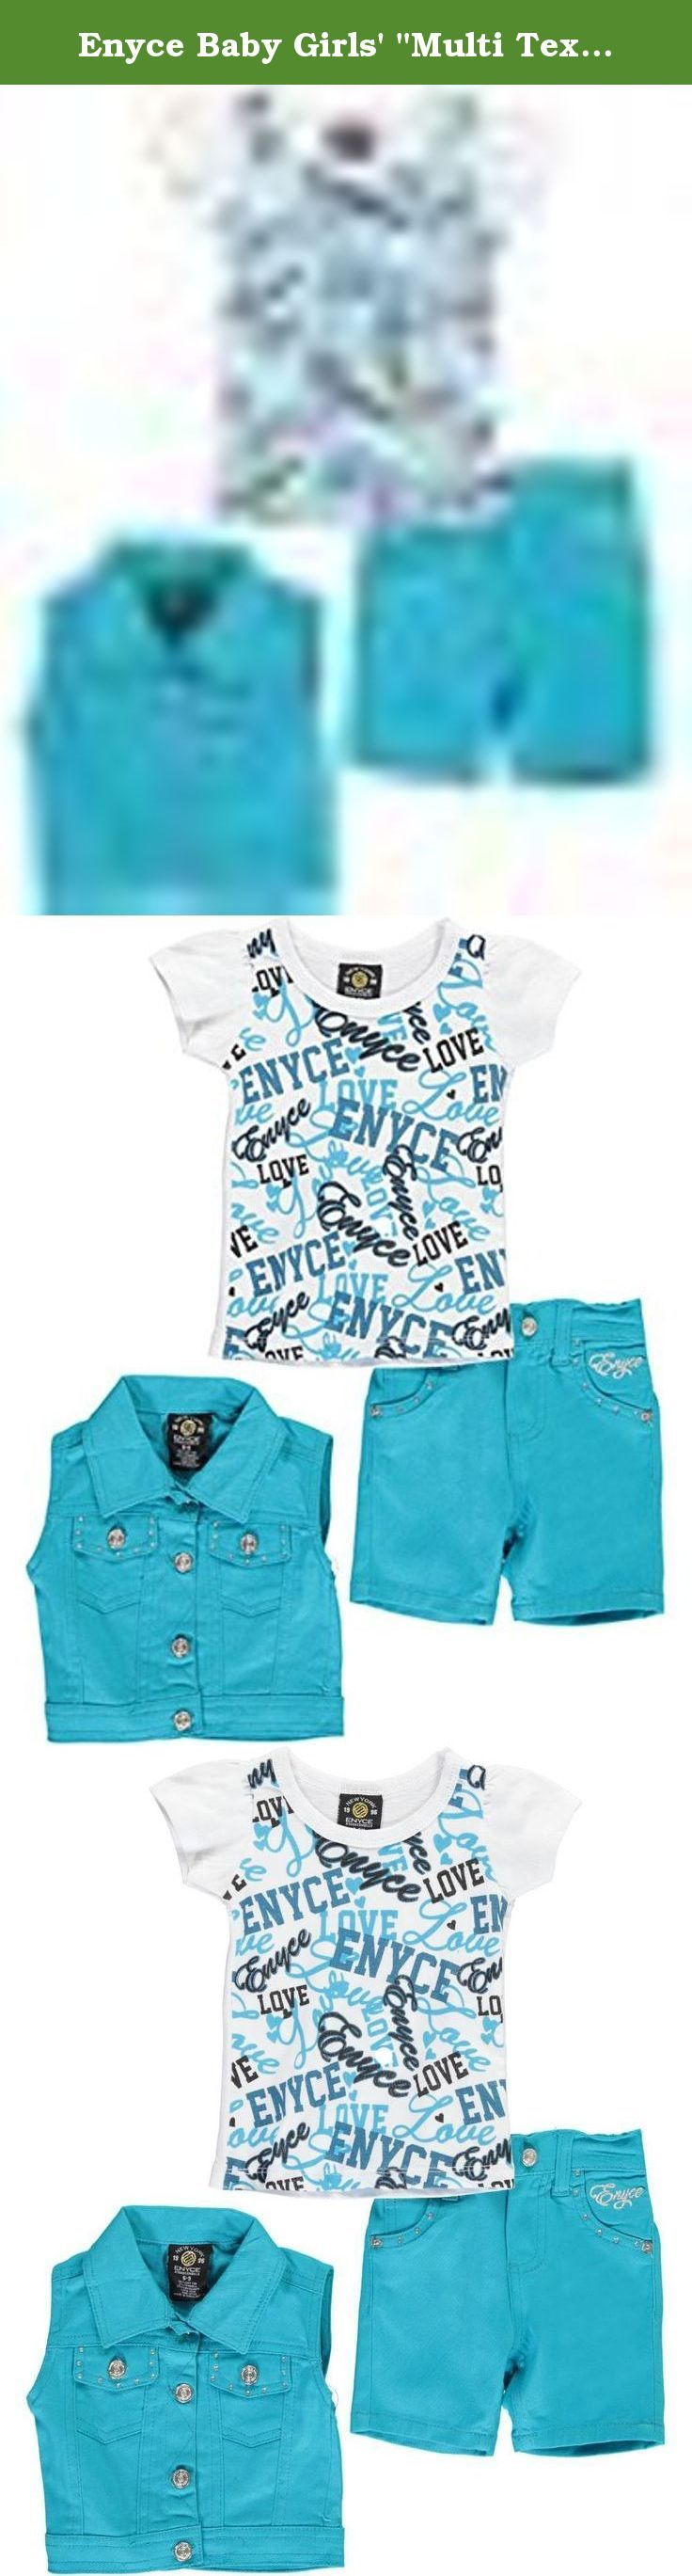 """Enyce Baby Girls' """"Multi Text"""" 3-Piece Layette Set - turquoise, 0 - 3 months. They'll love the soft construction and fun accents of this Enyce 3-piece layette set! Enyce 3-piece layette set Twill vest with button placket and gem accents (100% cotton) Jersey T-shirt with cap sleeves and logo print (100% cotton) Twill shorts with elastic waistband (100% cotton) Machine wash cold, inside out Imported."""